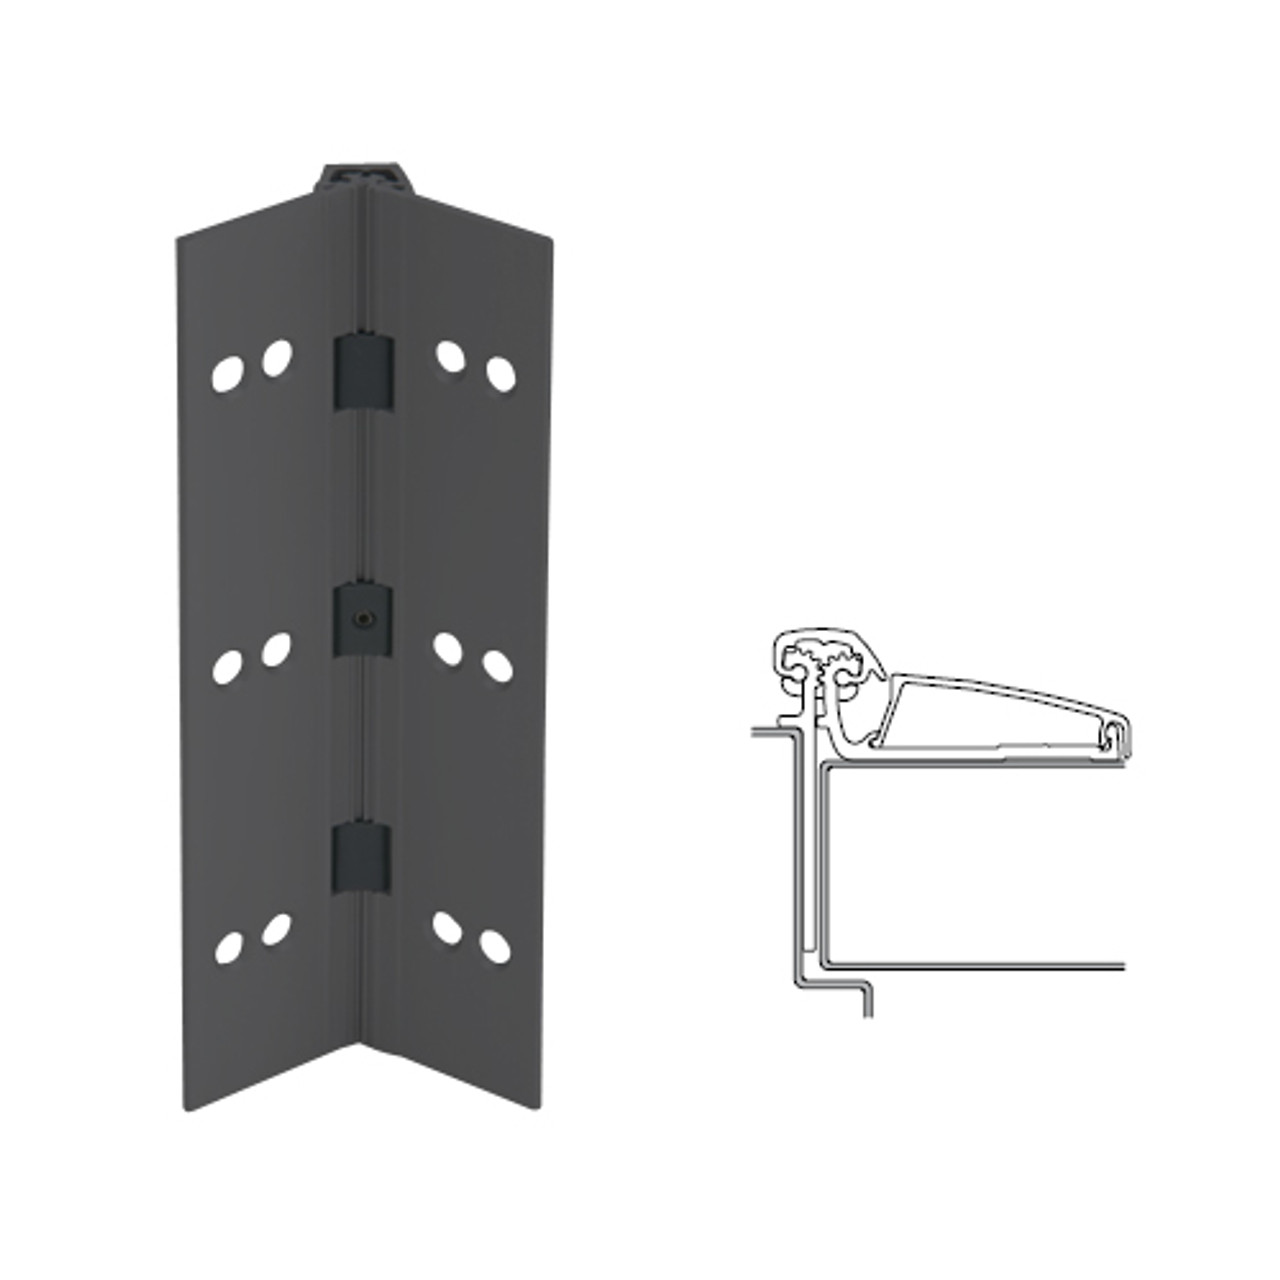 046XY-315AN-85 IVES Adjustable Half Surface Continuous Geared Hinges in Anodized Black